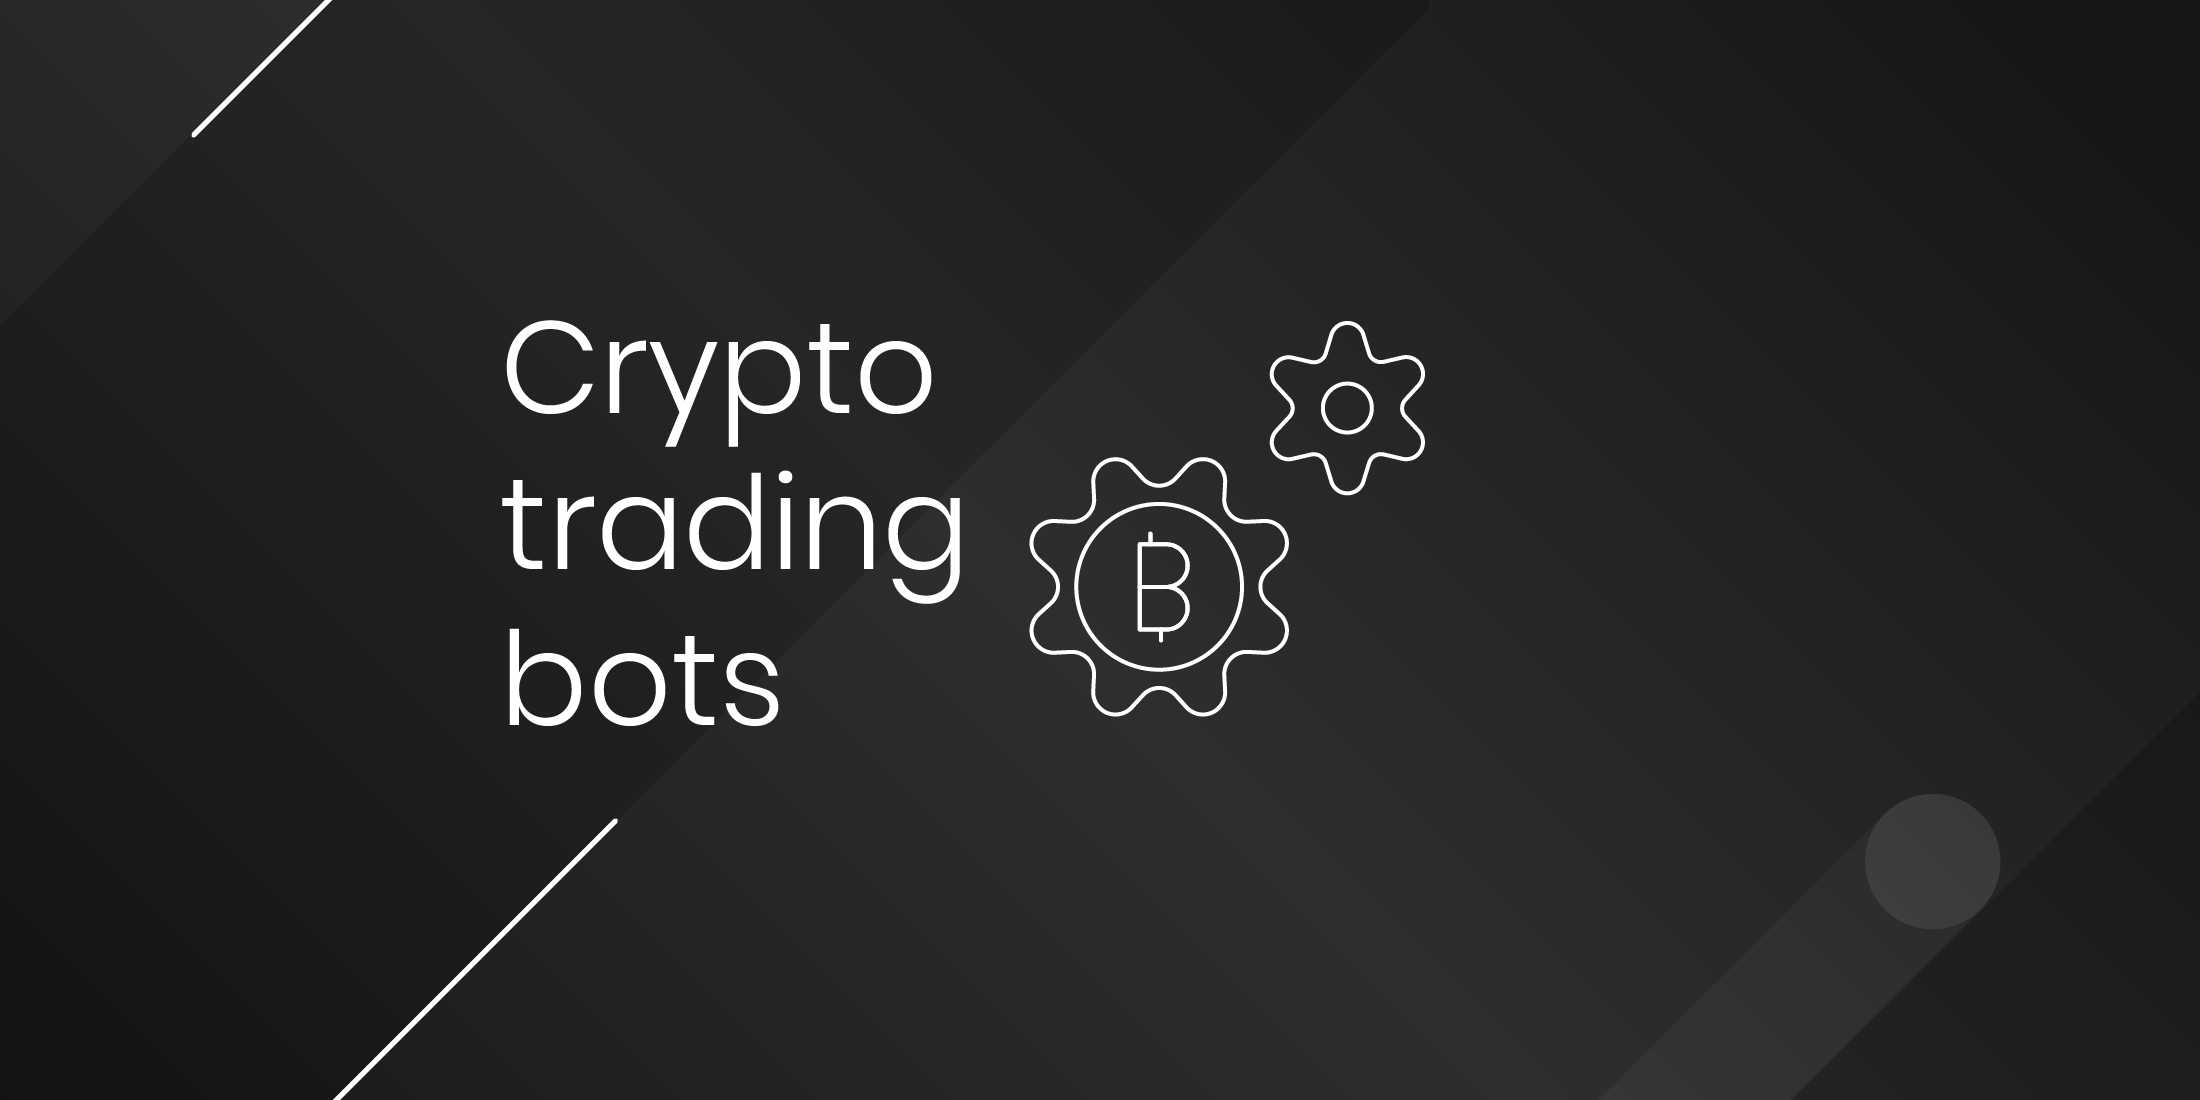 Cryptotrading